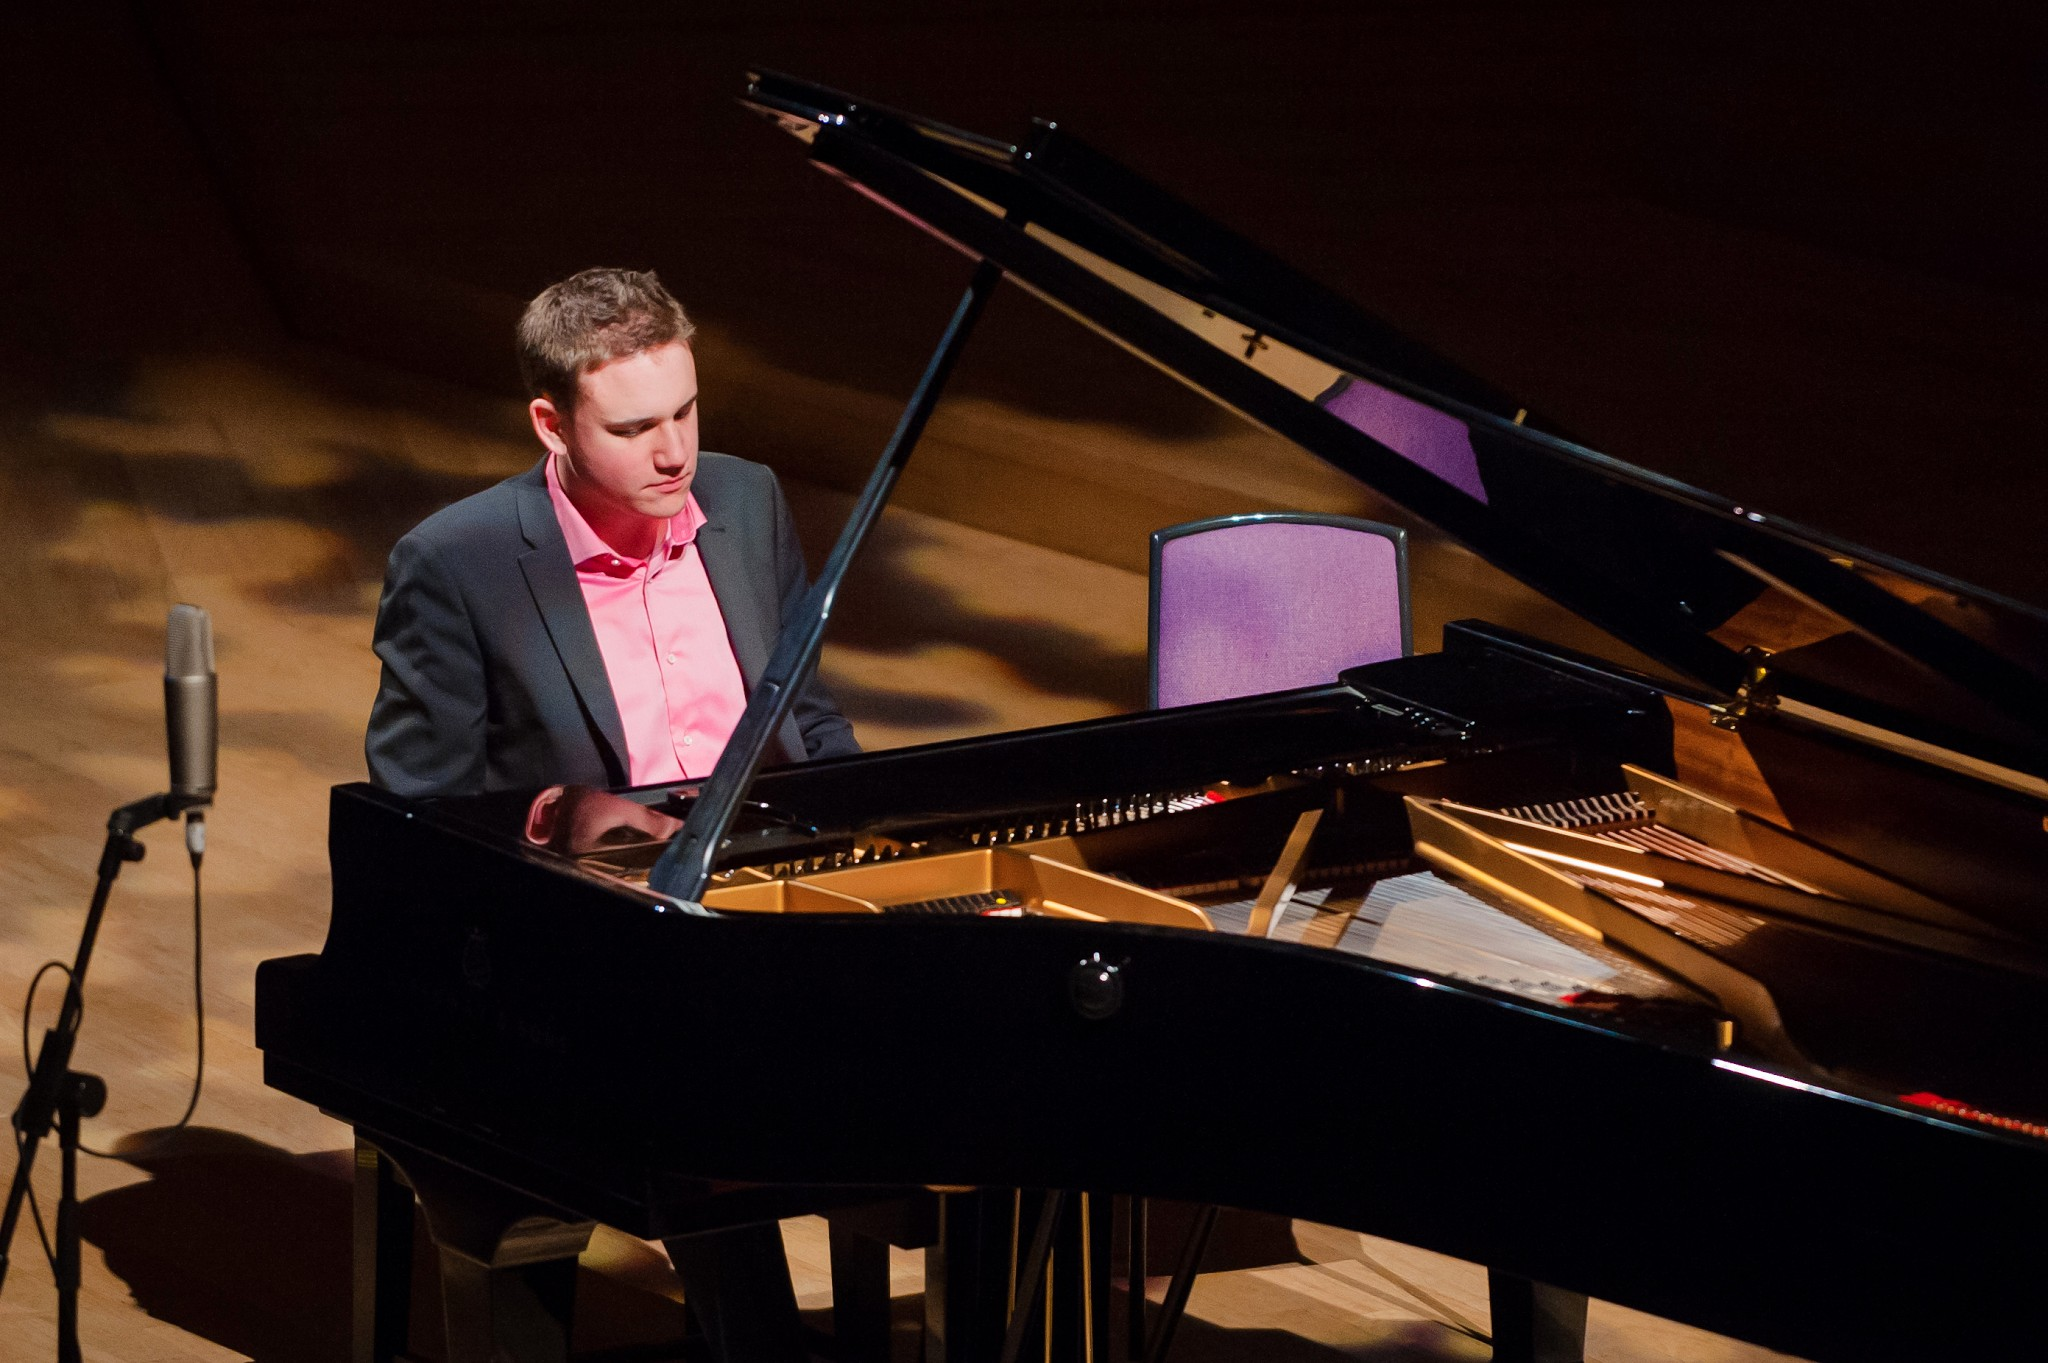 Reflections of Debussy Festival 2012